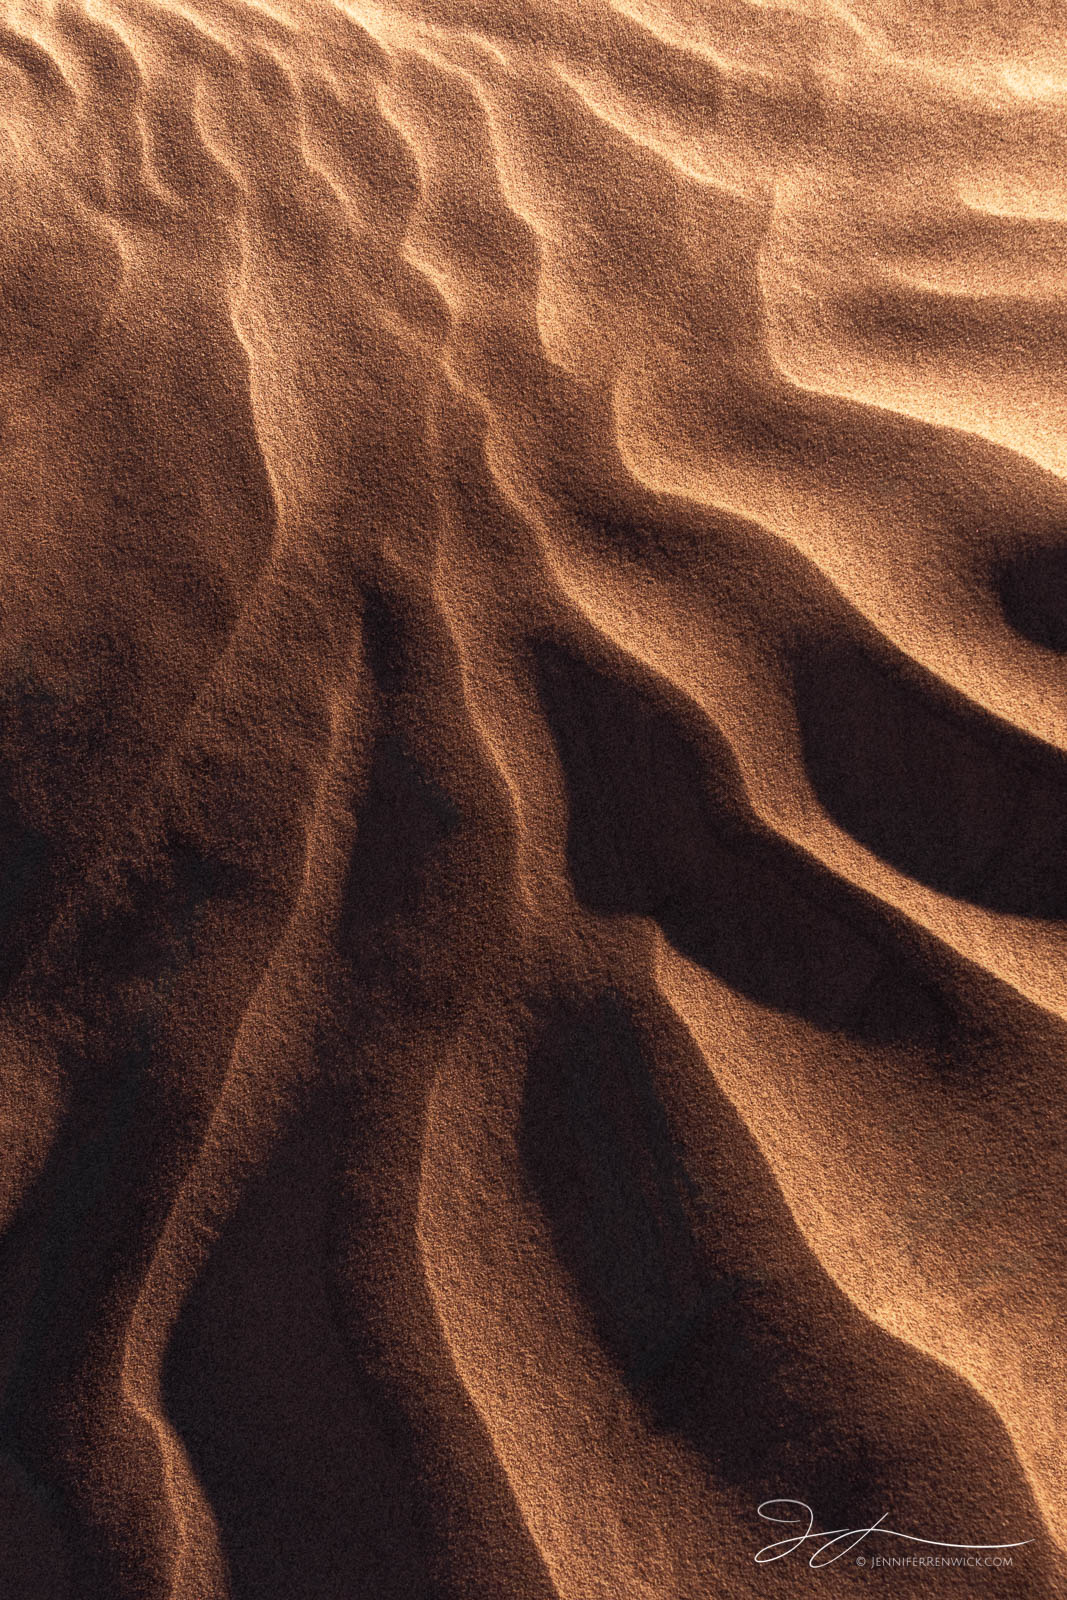 Sand ripples radiate out catching the last light before the sun disappears.